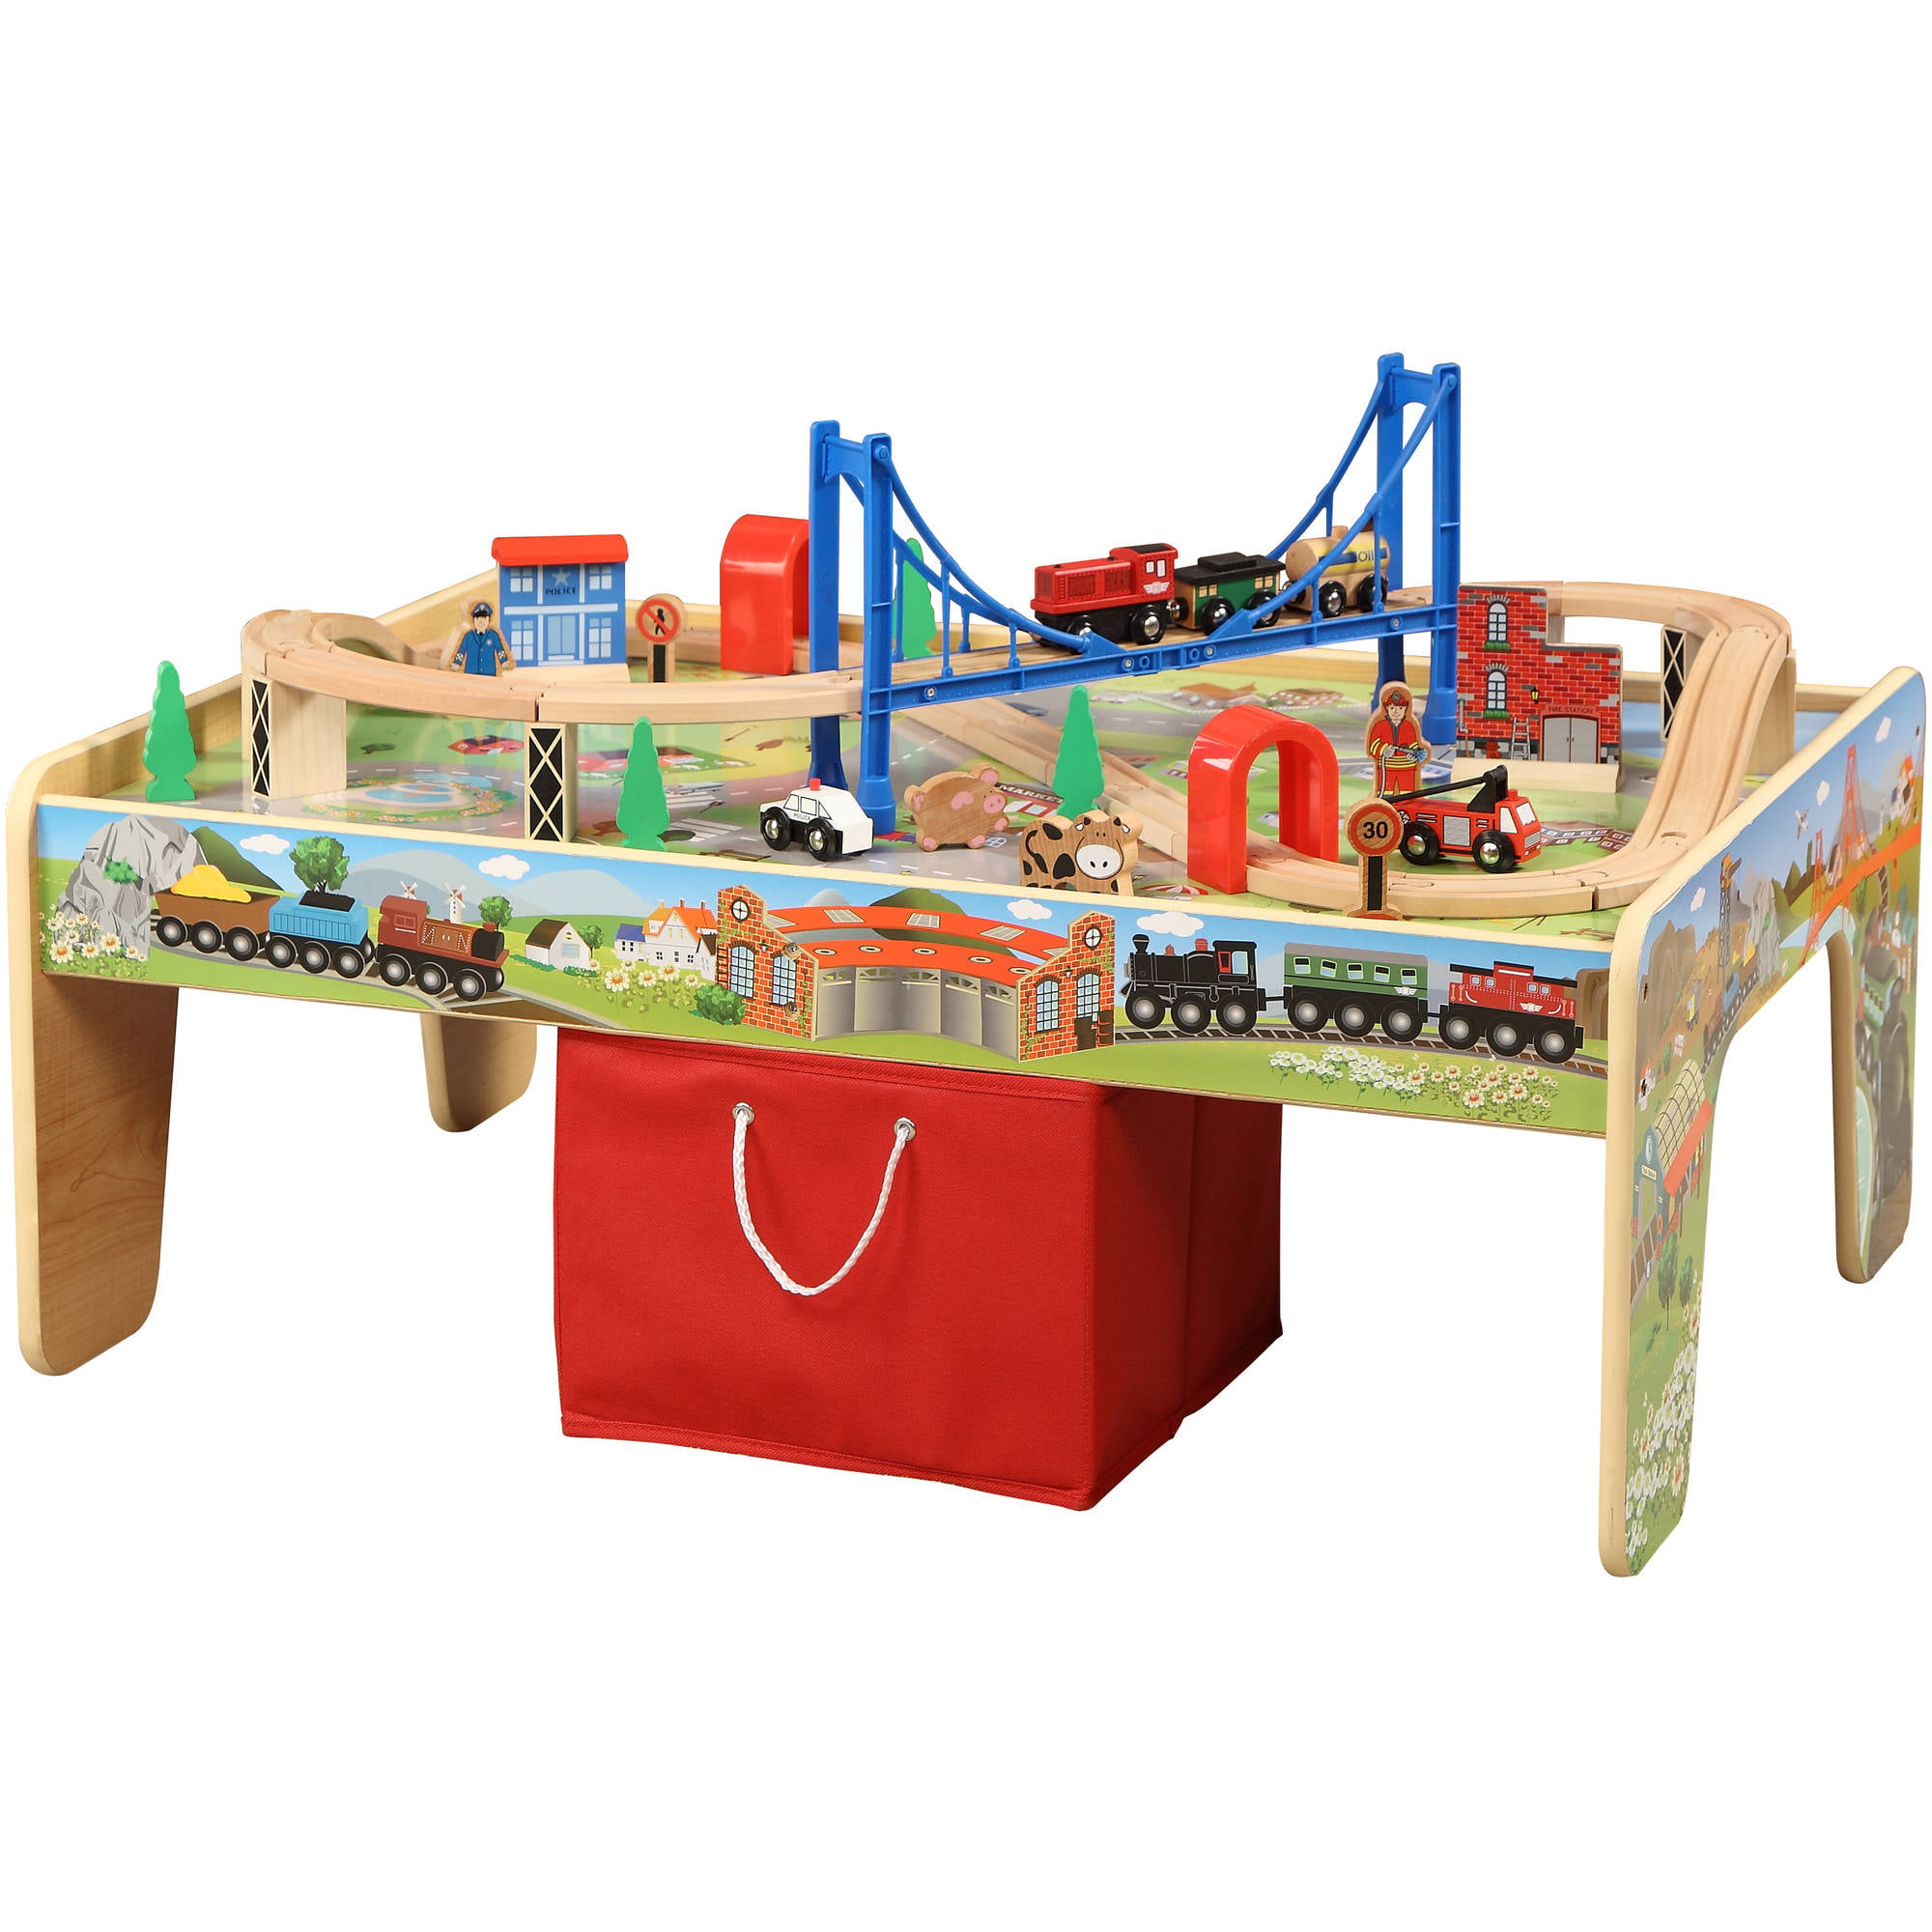 piece train set with in activity table  walmartcom -